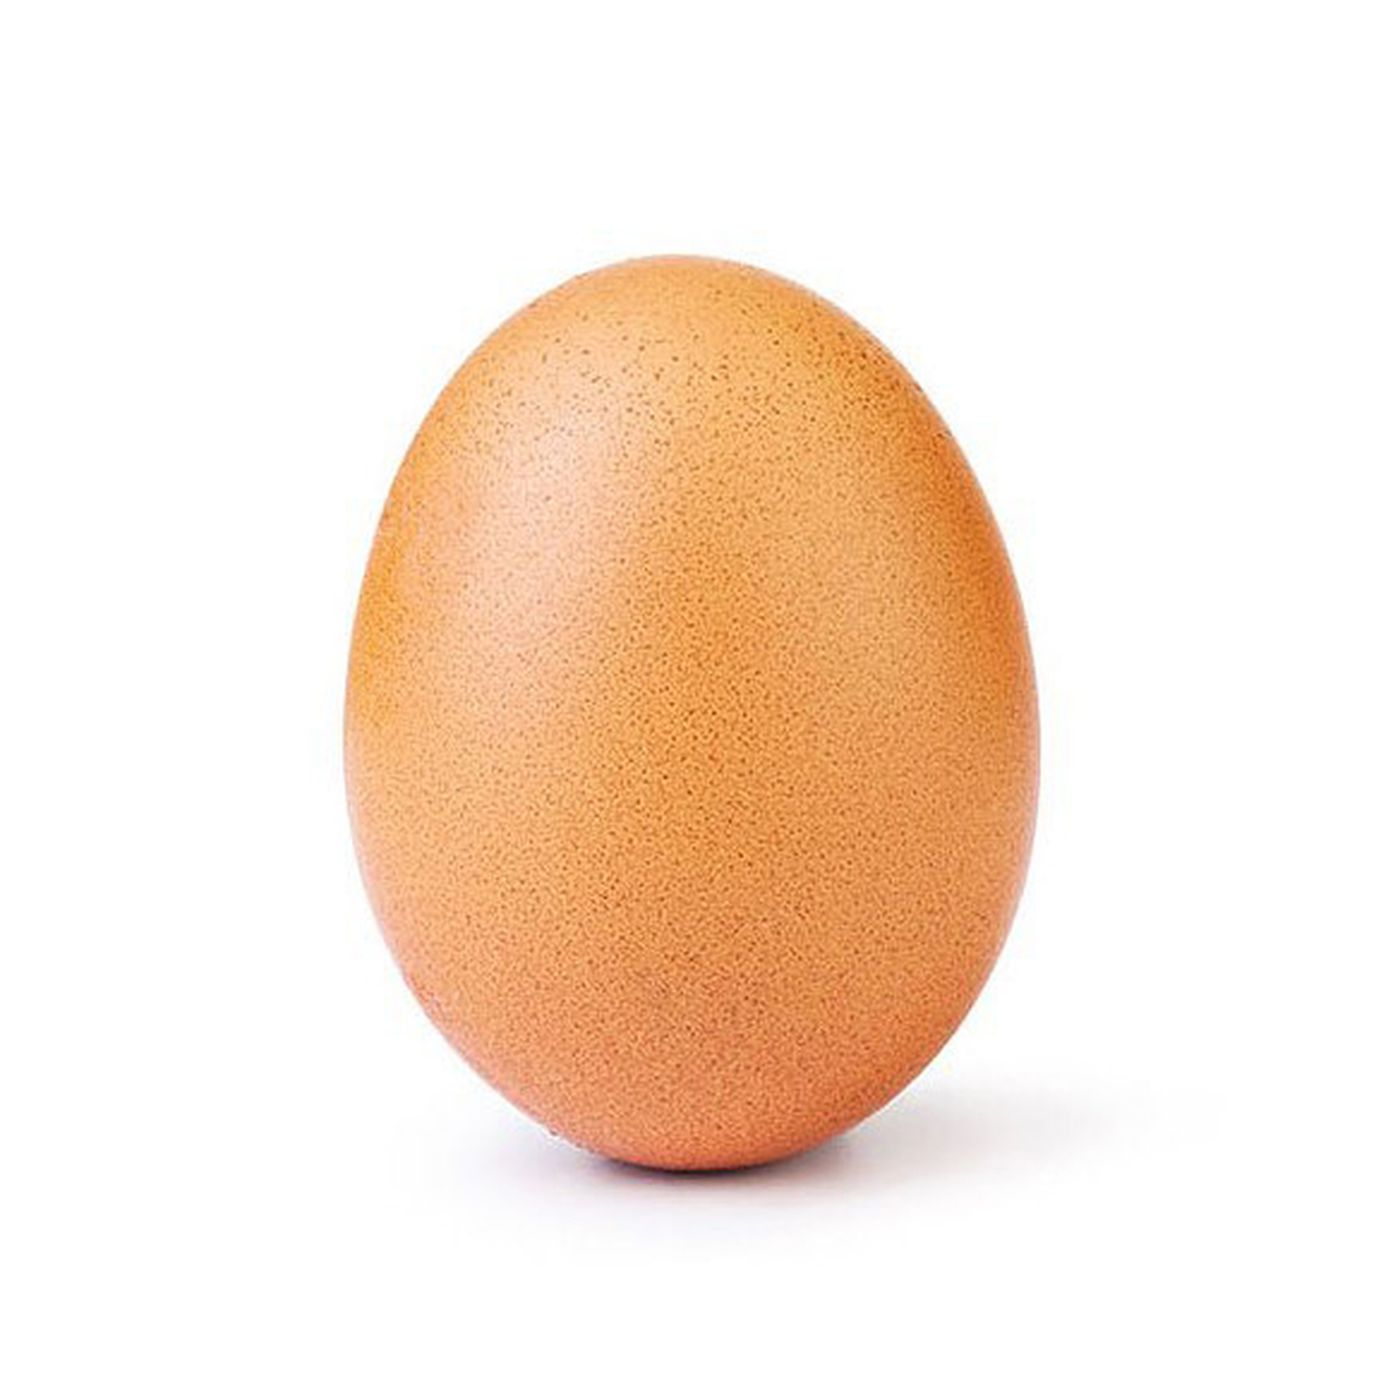 This egg has brought nearly 50 million people together in a matter of a week and a half.